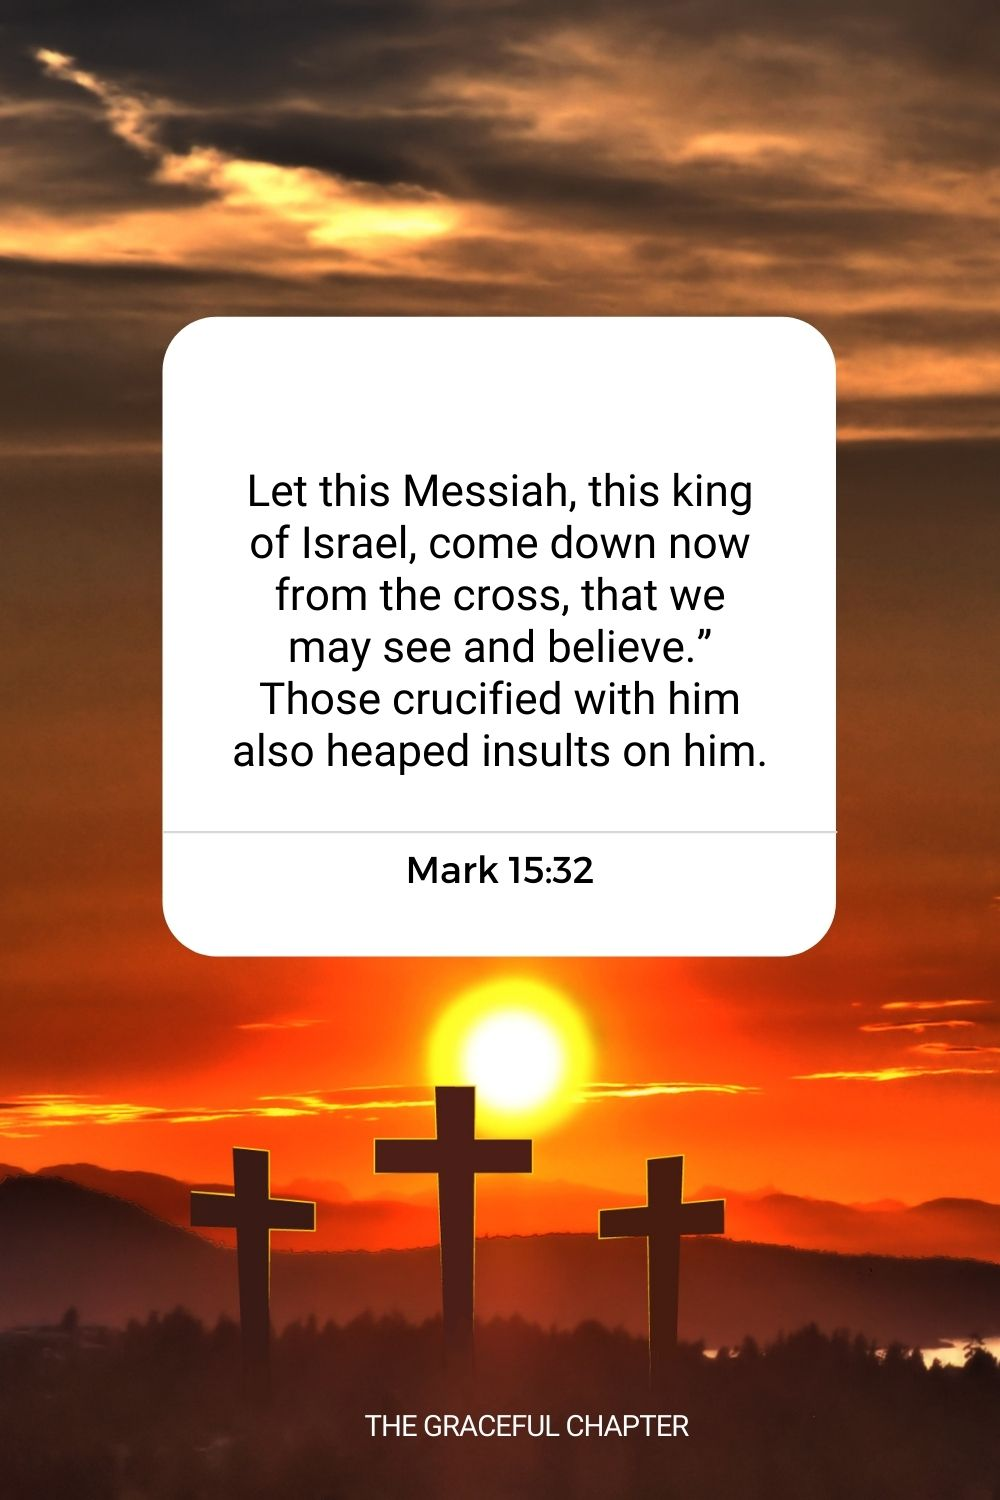 """Let this Messiah, this king of Israel, come down now from the cross, that we may see and believe."""" Those crucified with him also heaped insults on him. Mark 15:32"""